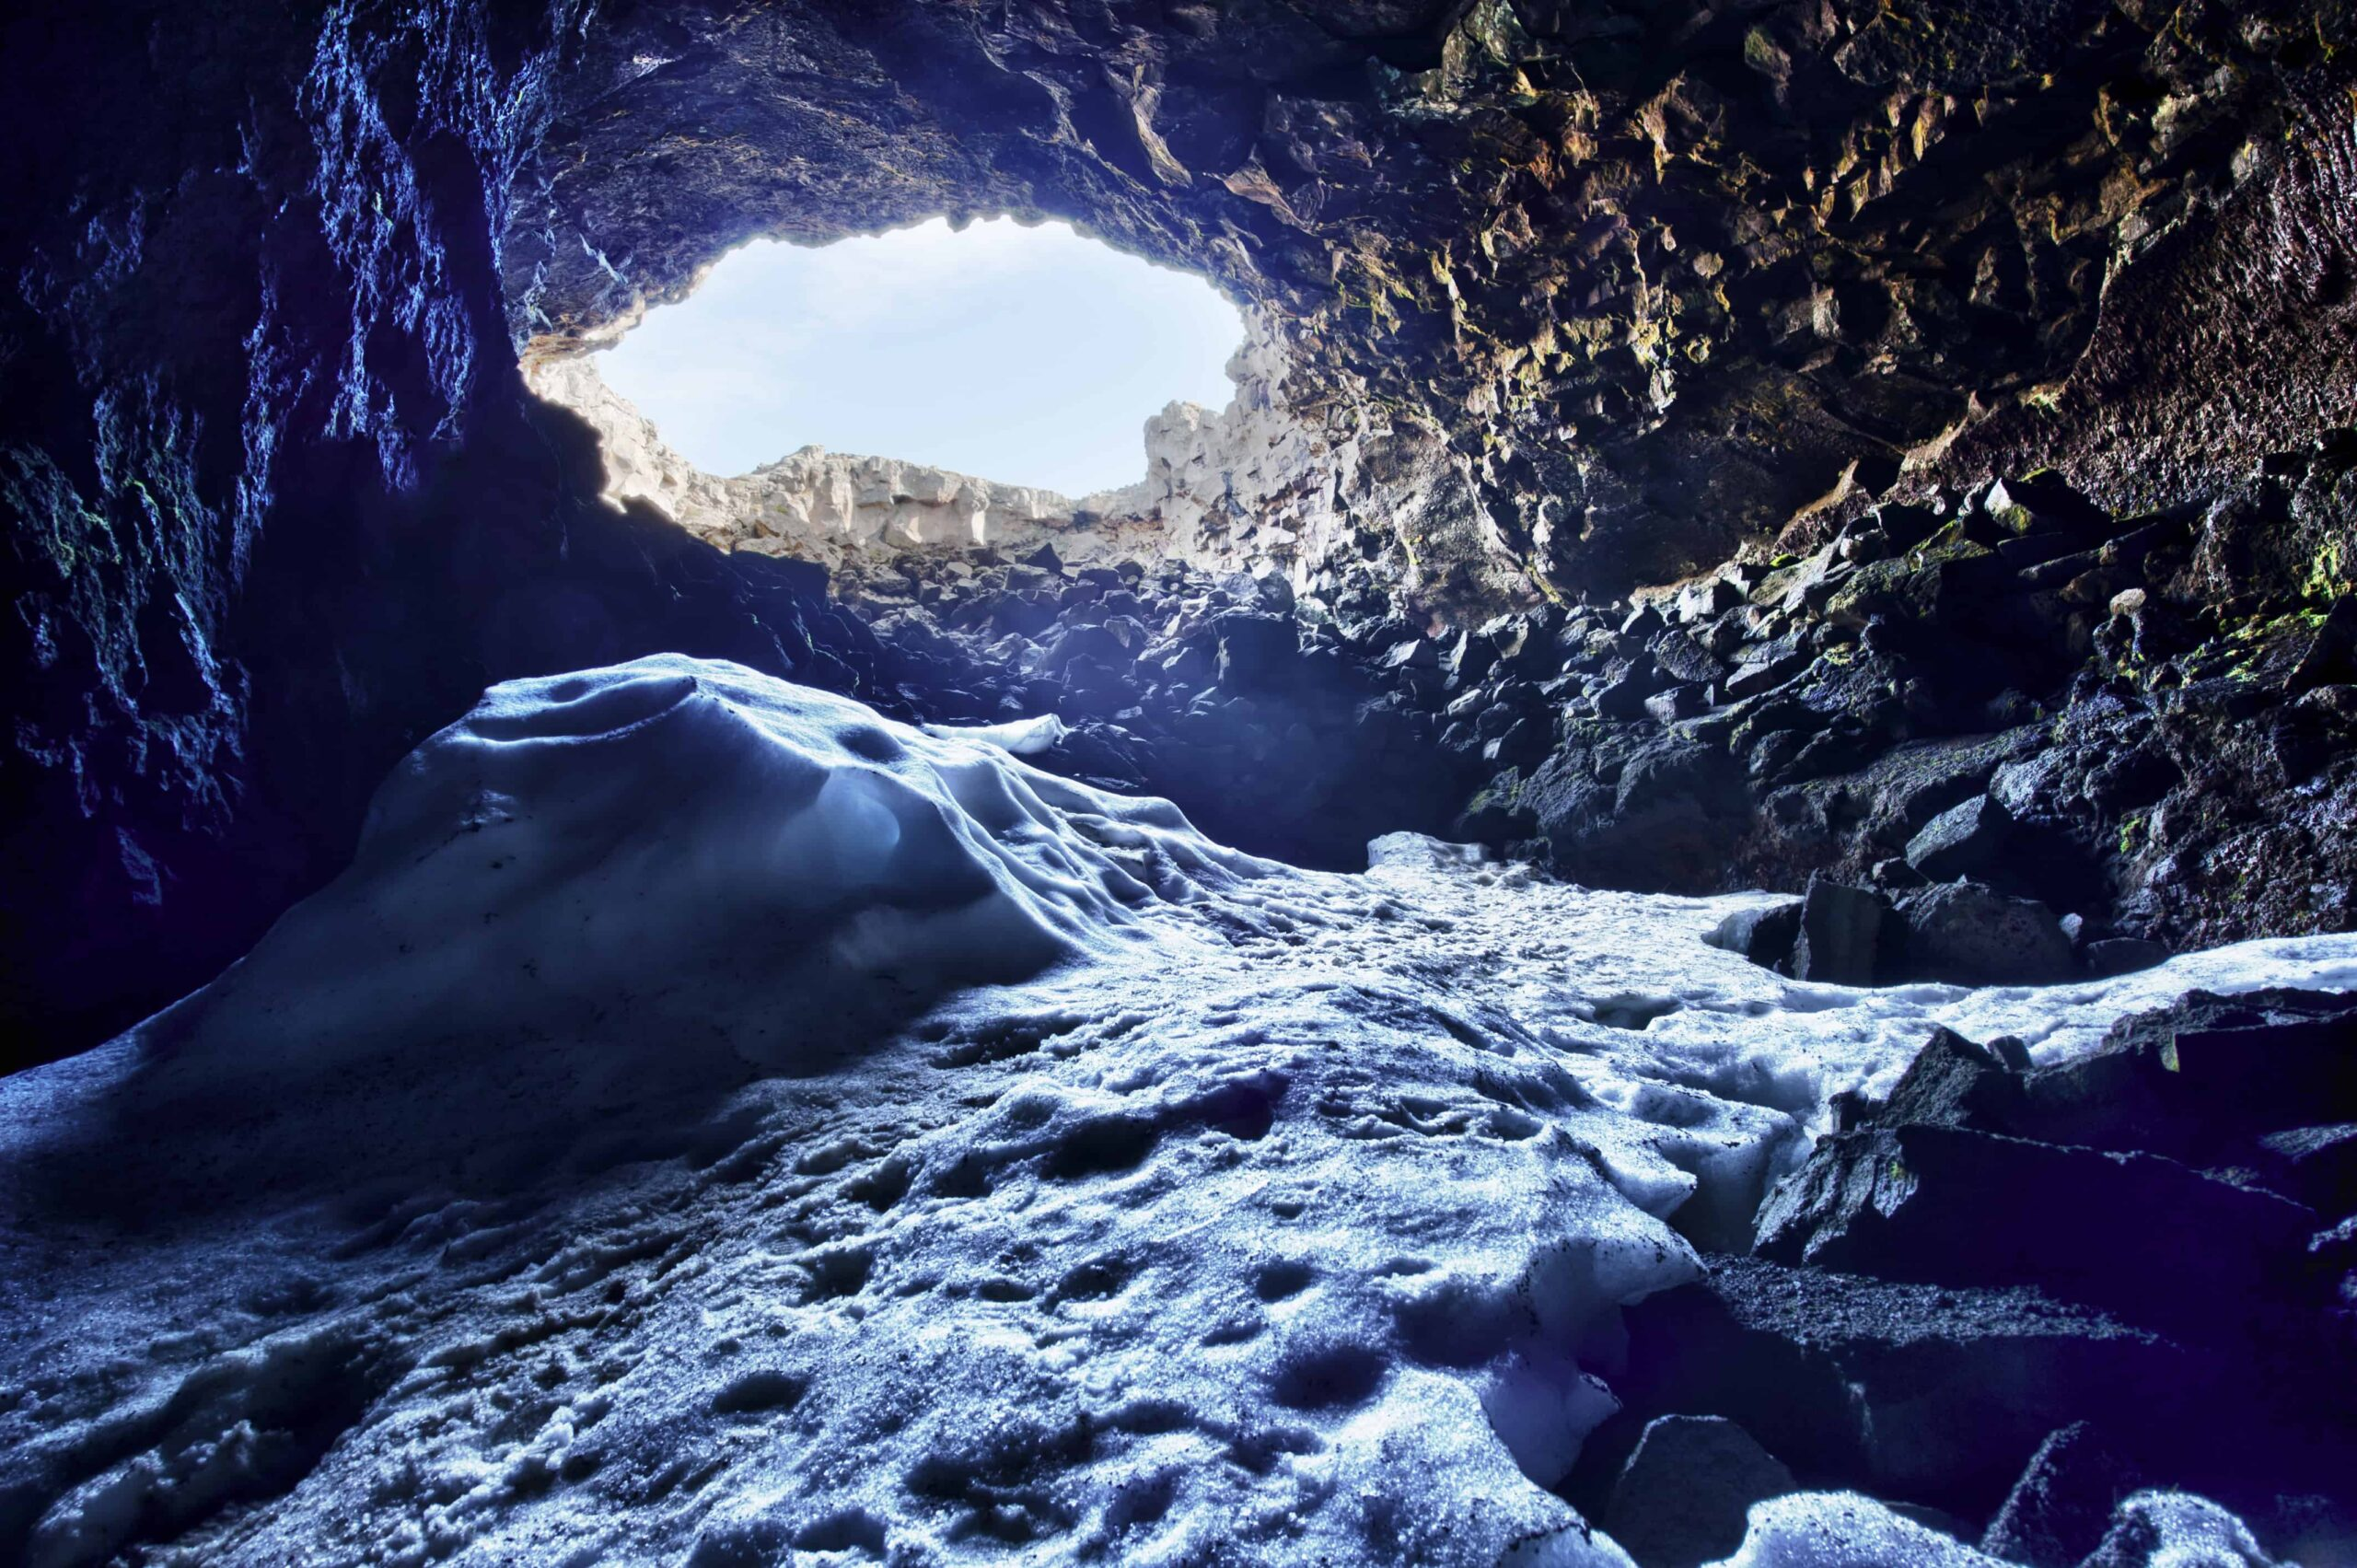 lava cave in Iceland with snow during winter